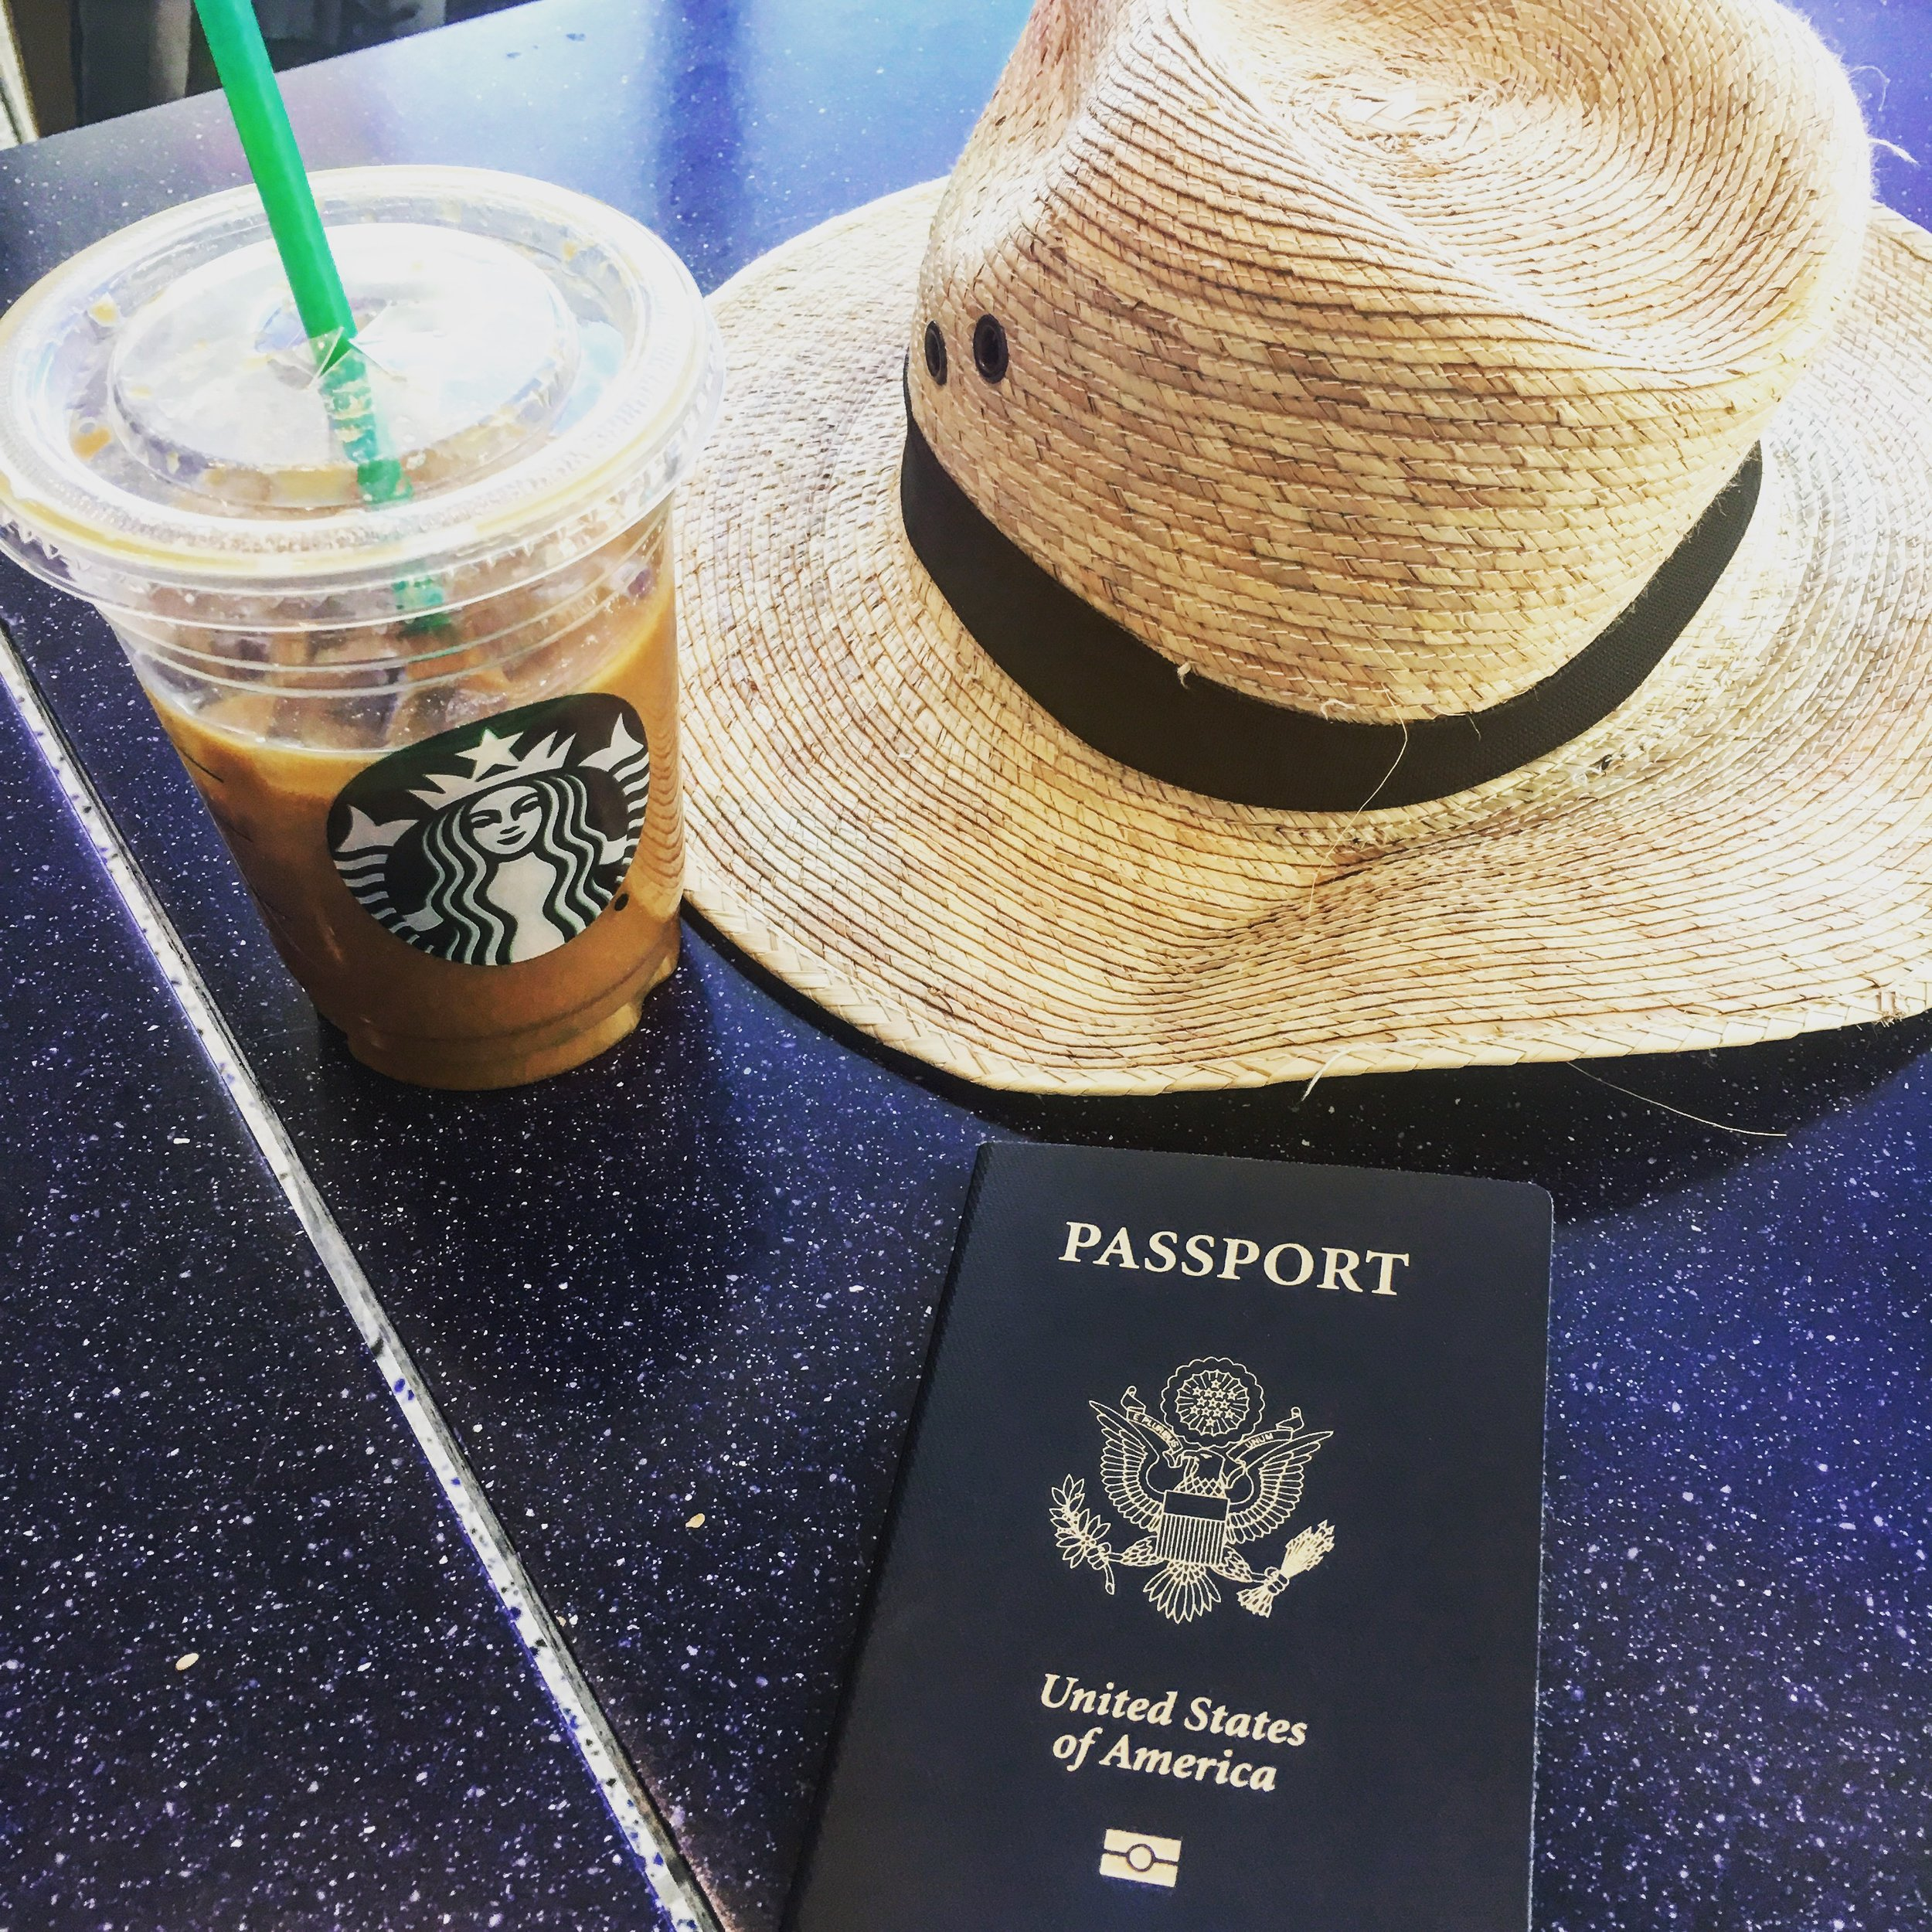 My ideal airport setup - chilling with a beverage, passport easily accessible, not rushing.